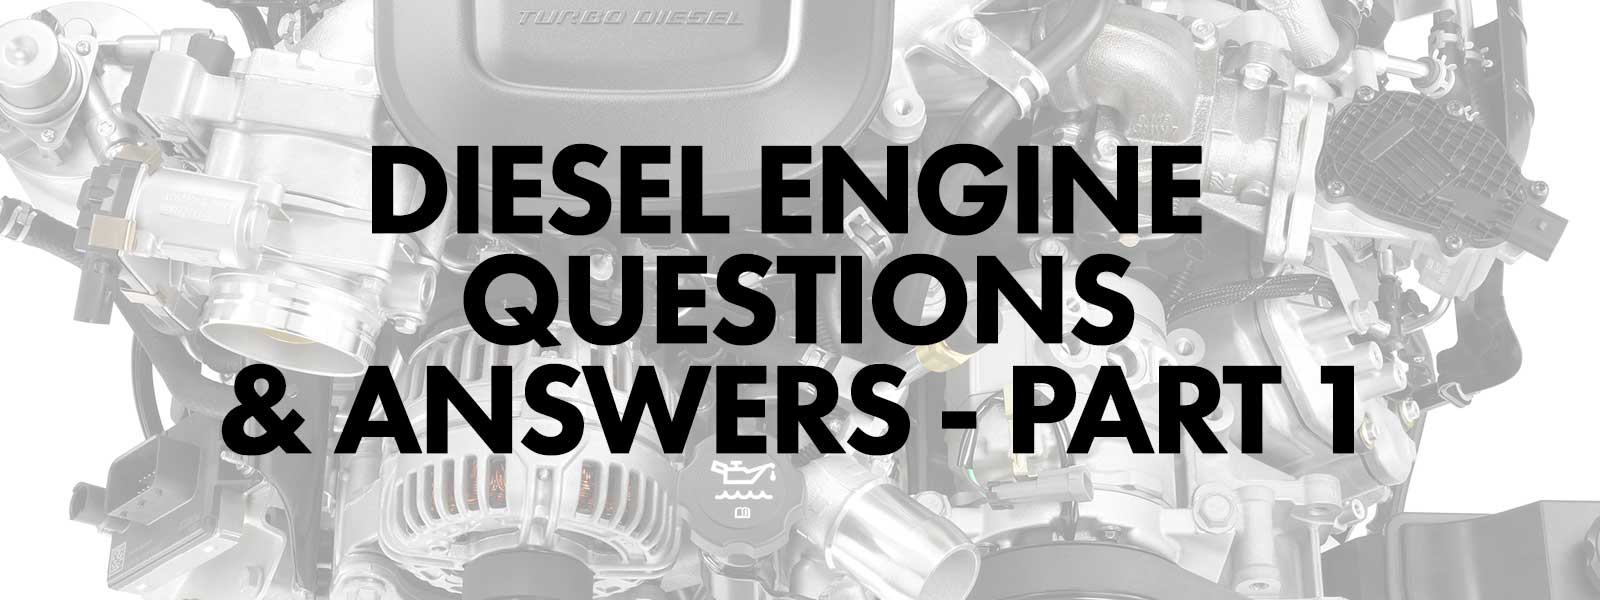 Diesel Engine Questions and Answers - Part 1